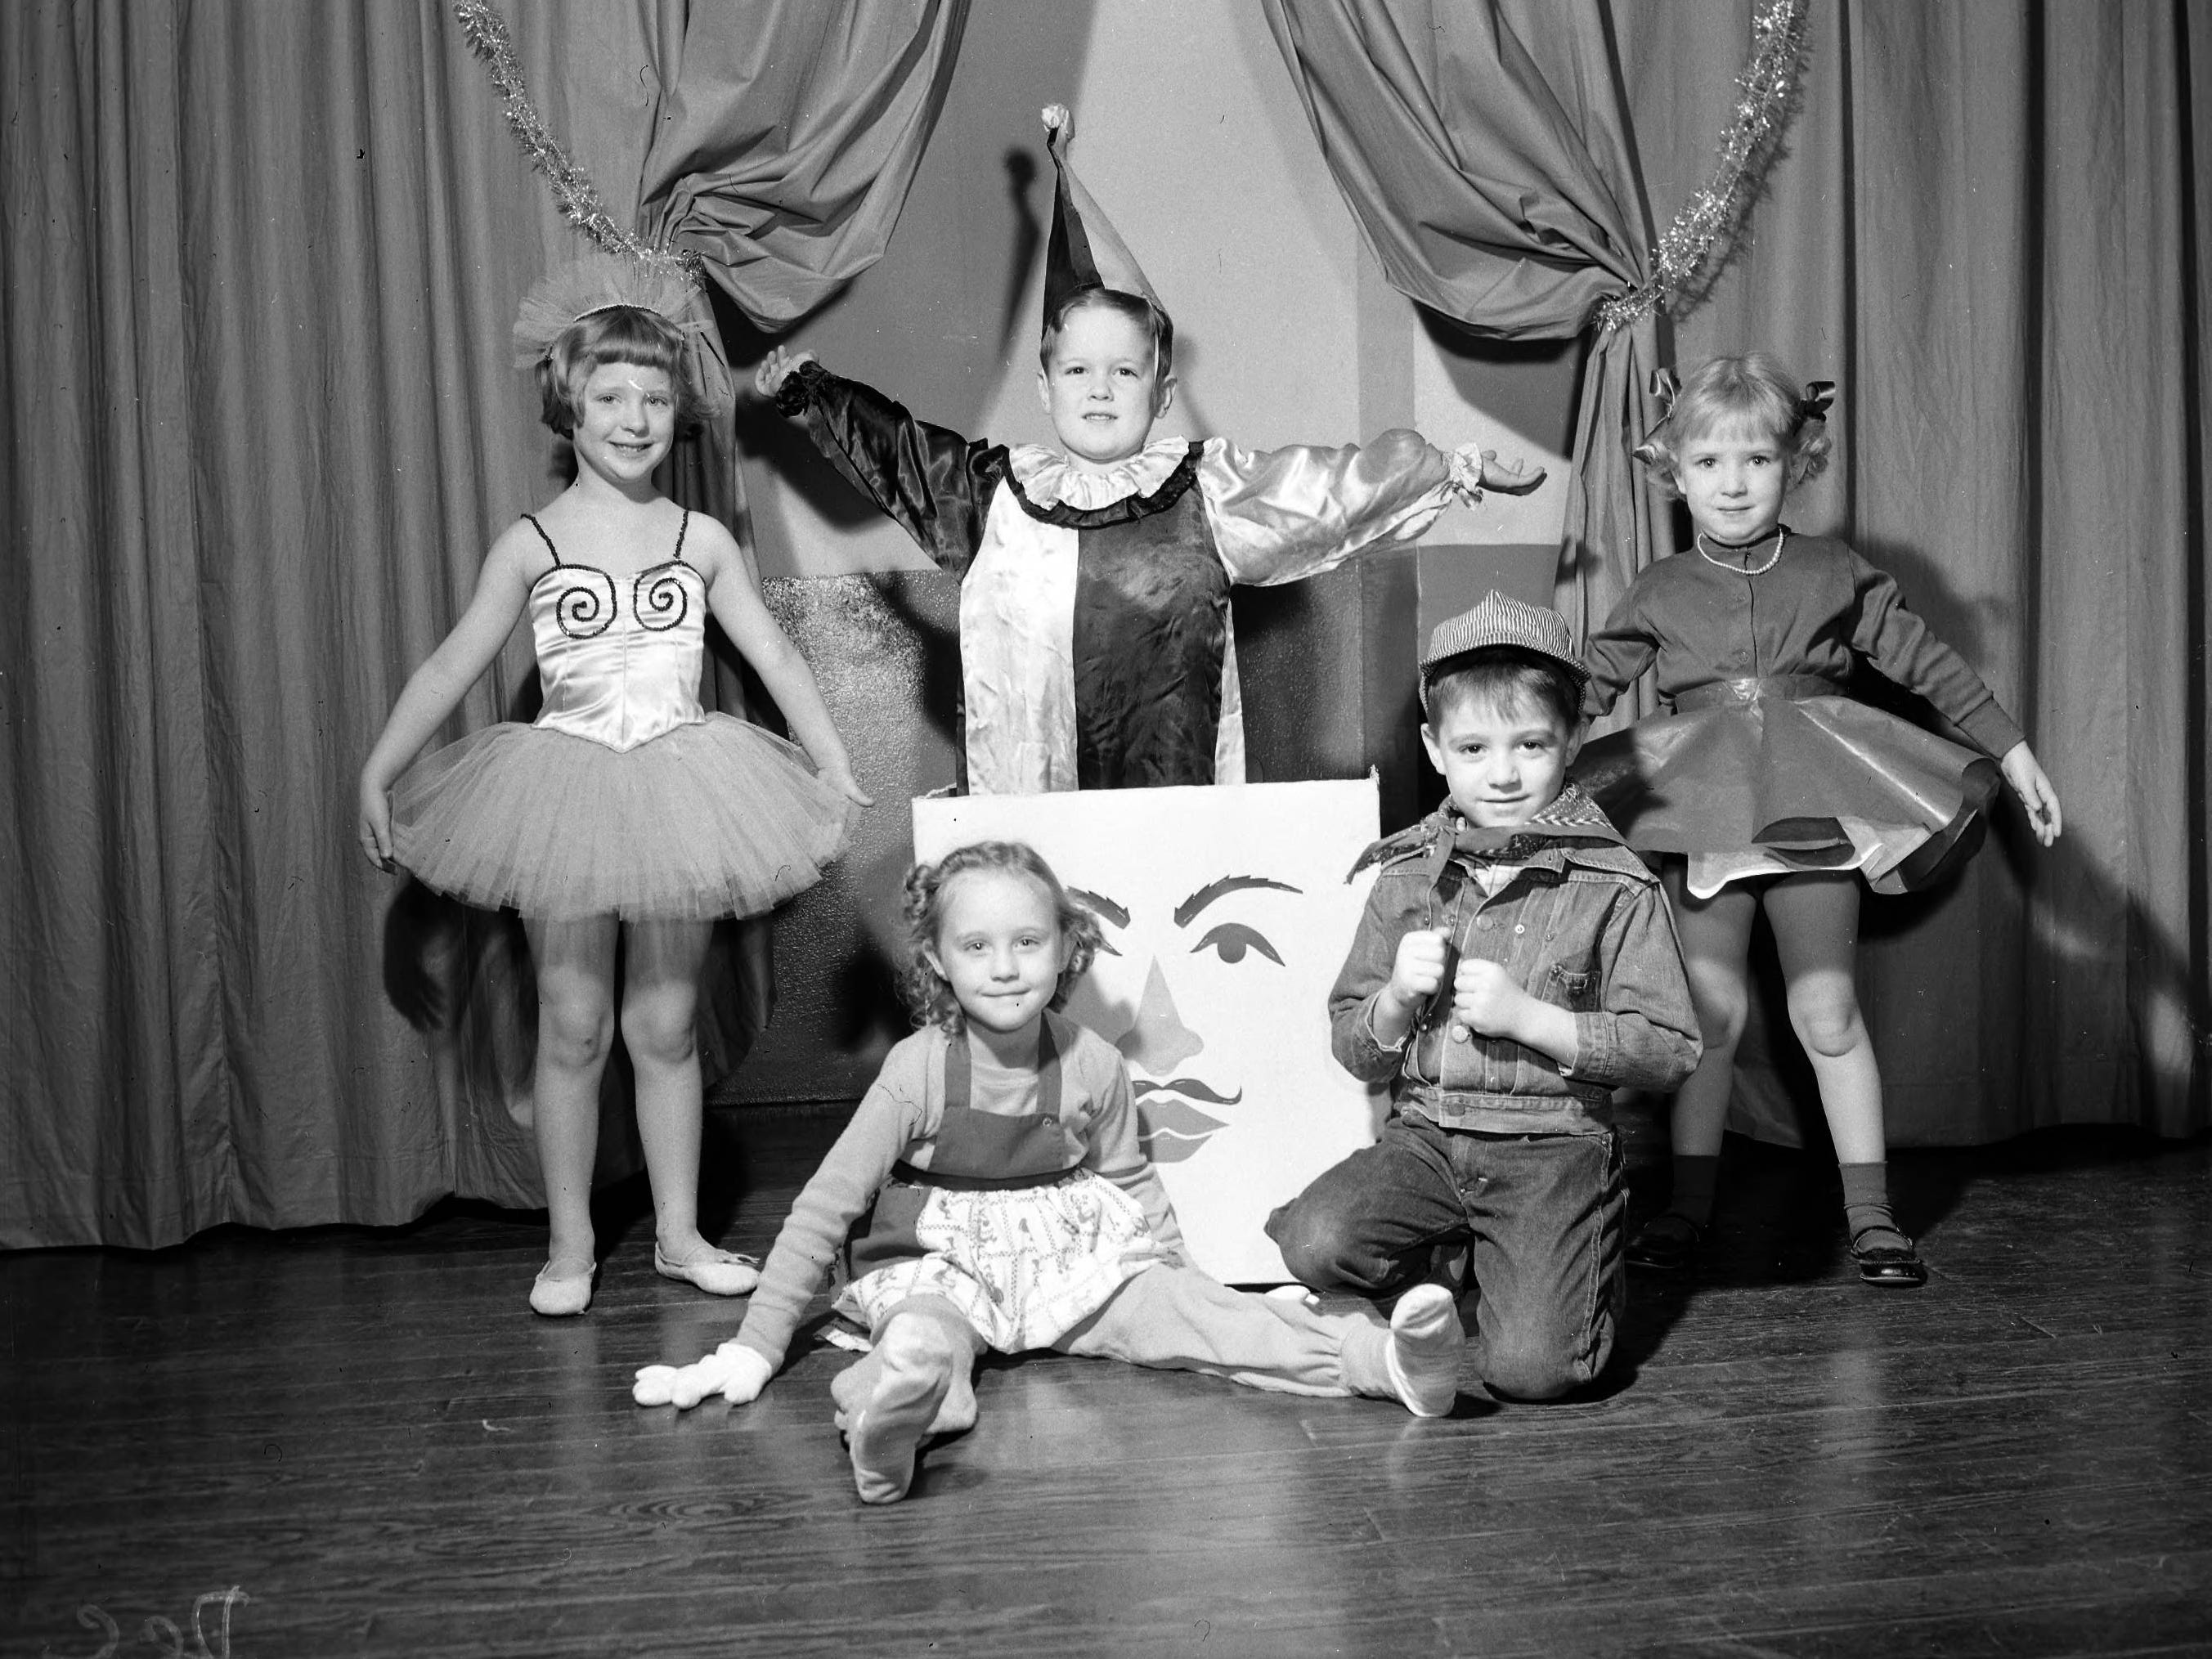 Boyd Kindergarten Toy Shop play. Pictured are Carolyn Spencer as Raggedy Ann, Bruce Hinchey as a train engineer, Julie Wright as a walking ballet doll, Ronnie Murphy as the Jack-in-the-box, and Barbara Troutman as the skating doll. Published in the News & Leader on December 12, 1954.